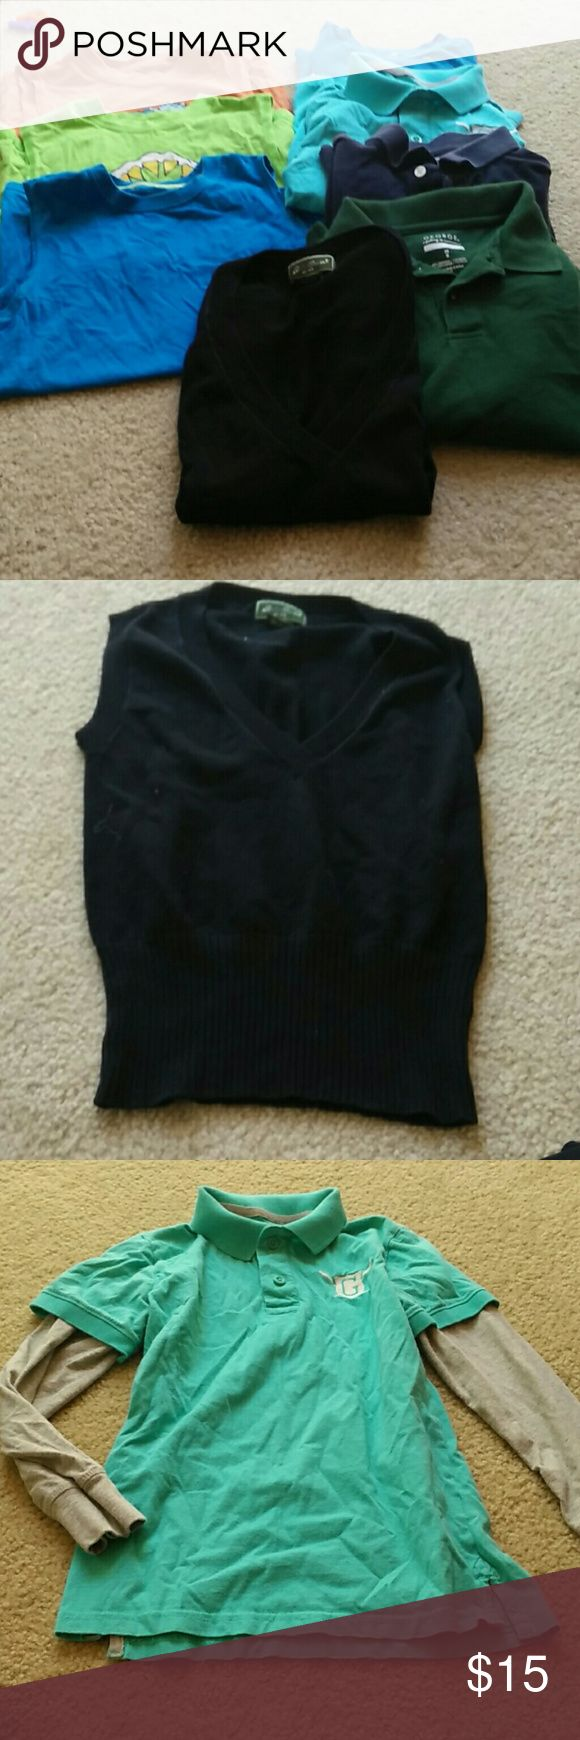 Lot of boys clothes size 8, 8 pieces for only 20 3 sleeveless shirts, 1 t-shirt, 1 knit vest,  2 long sleeve polos, 1 short sleeve polo shirt. everything is worn, but still very useful for the price.  I have a ton of other kids listings. Check them out, bundle and save. Shirts & Tops Tees - Long Sleeve